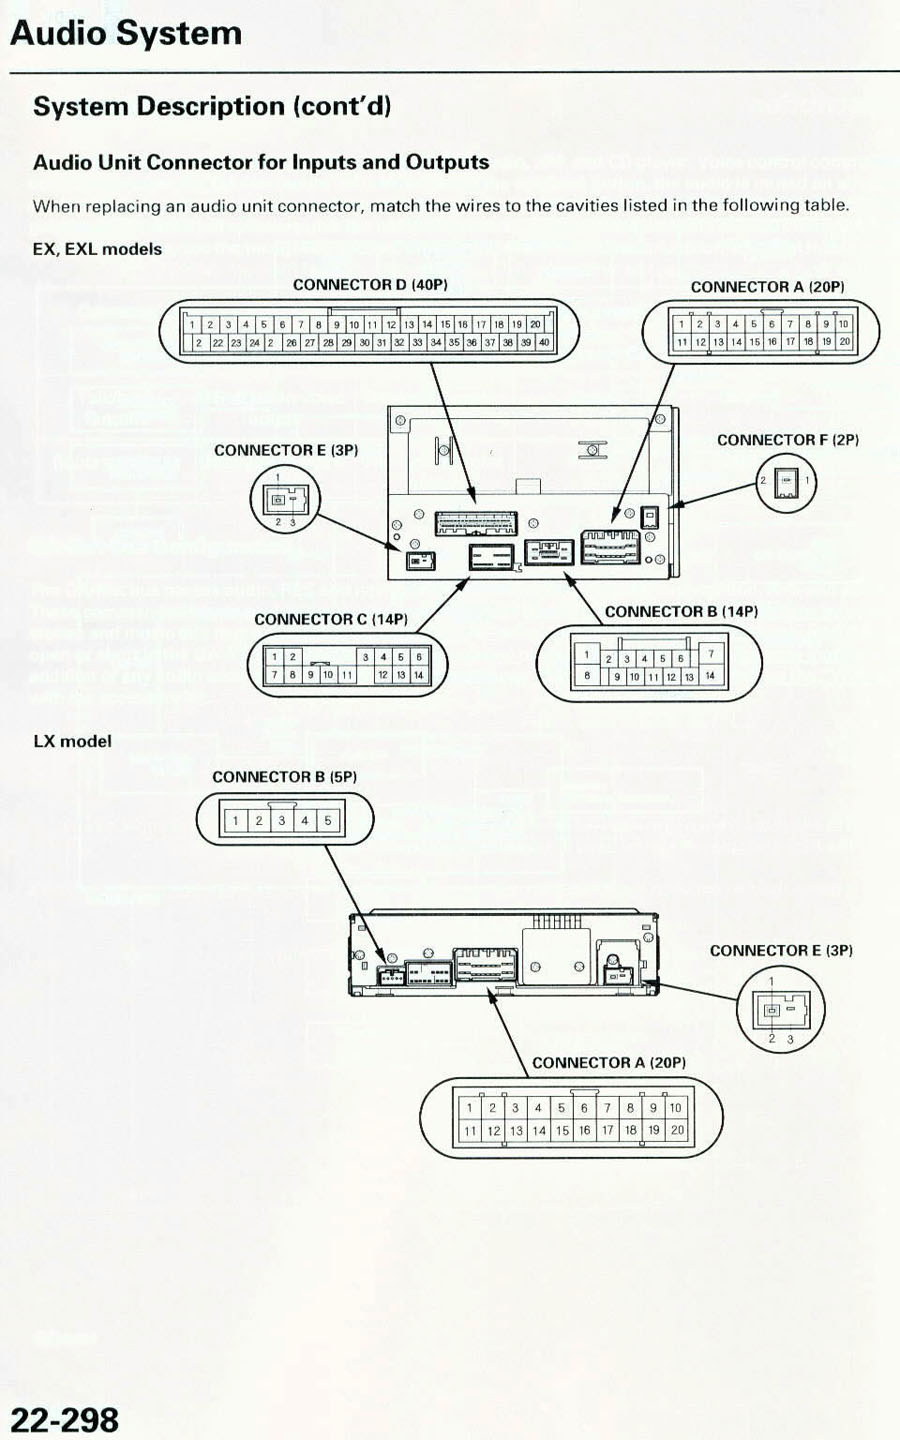 2008 Honda Pilot Radio Wiring Diagrams Schema F150 Trailer Diagram Re Factory Subwoofer And Aftermarket Hu Ford